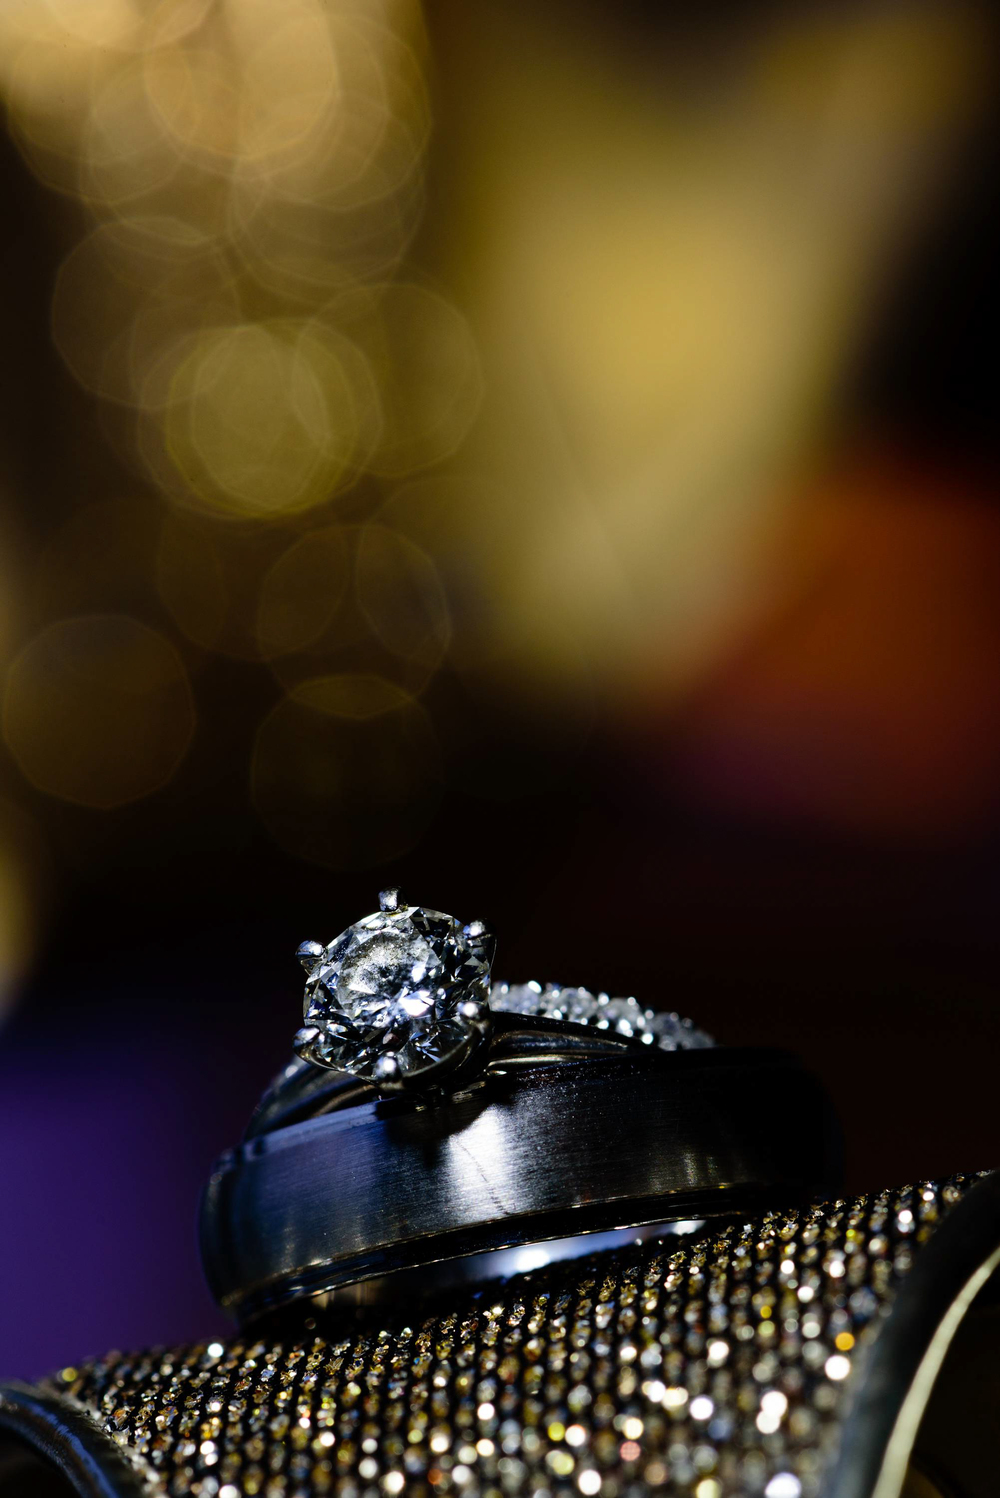 We love photographing details and always find a creative way to photograph engagement rings & wedding bands.